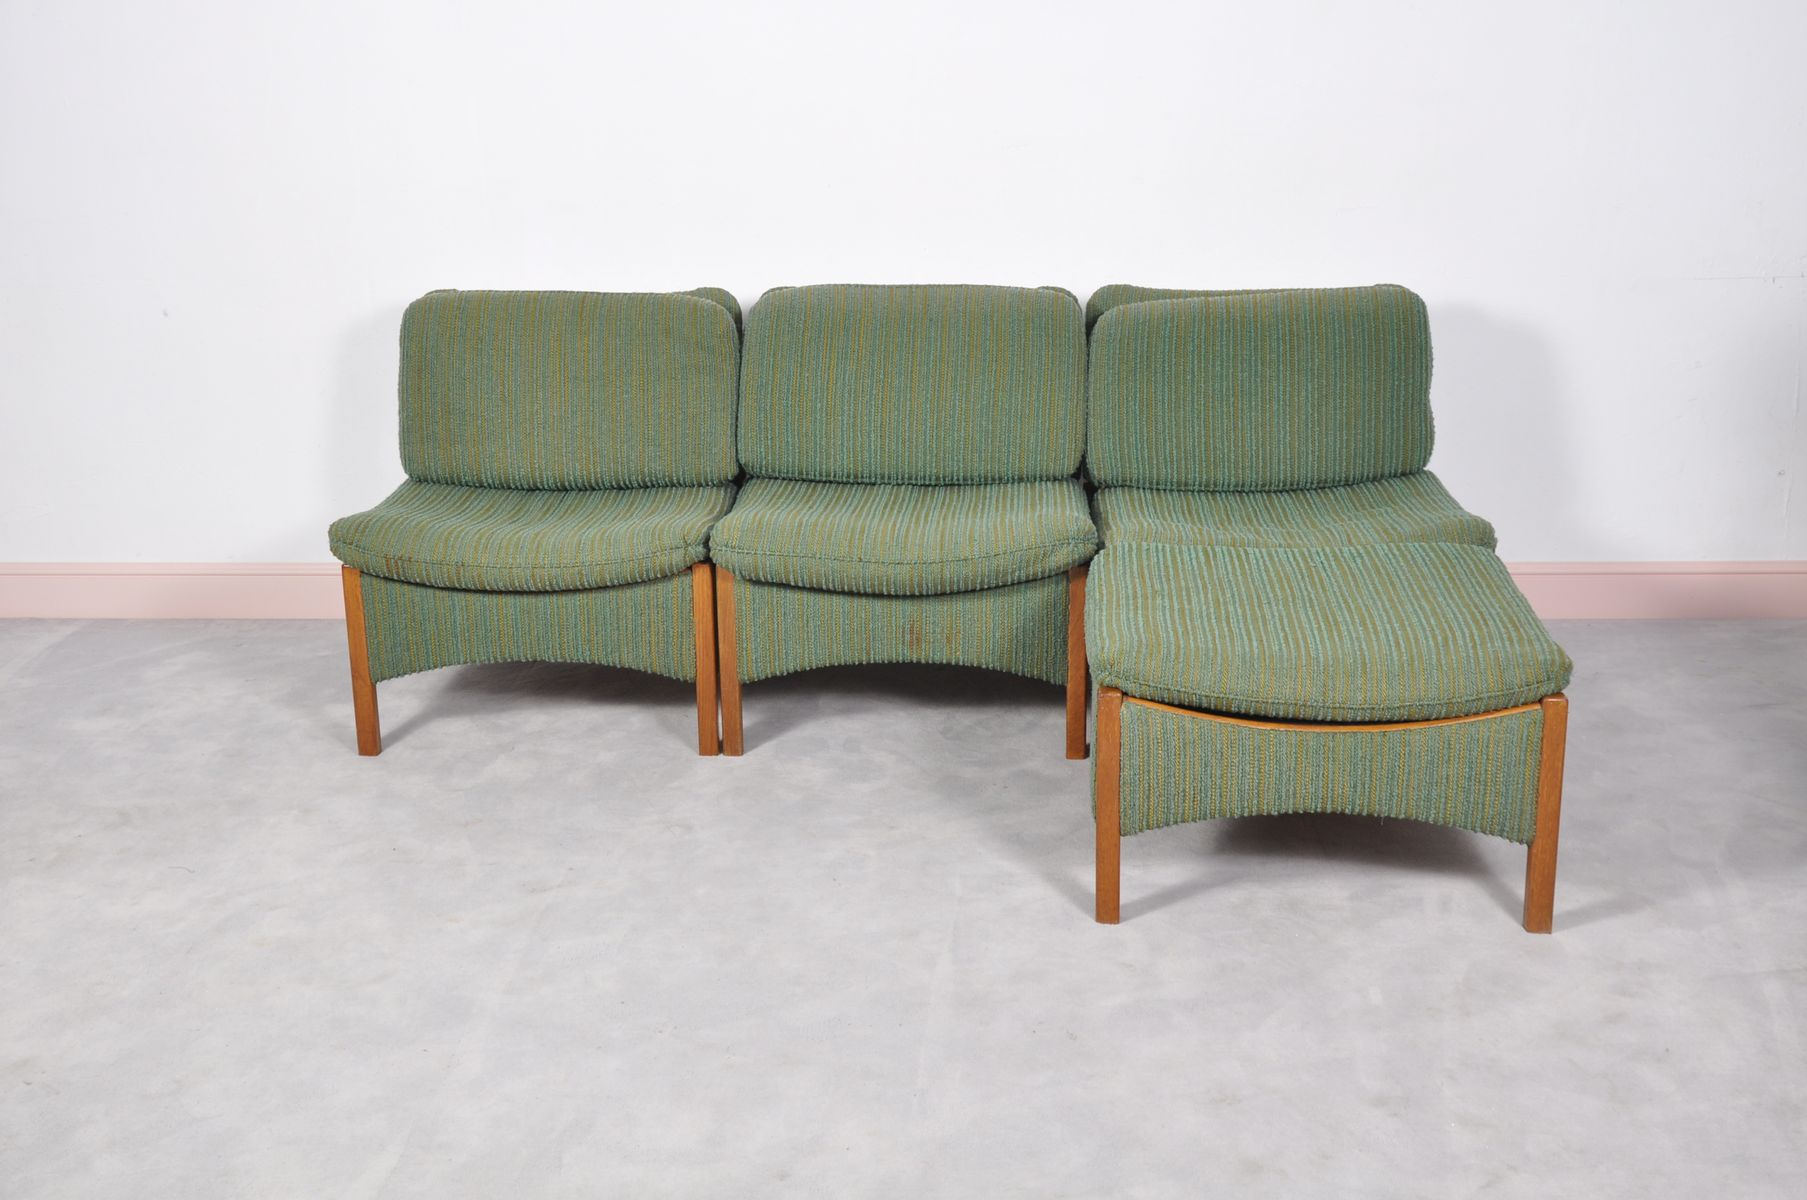 Mid century danish sectional teak sofa for sale at pamono for Mid century sectional sofa for sale